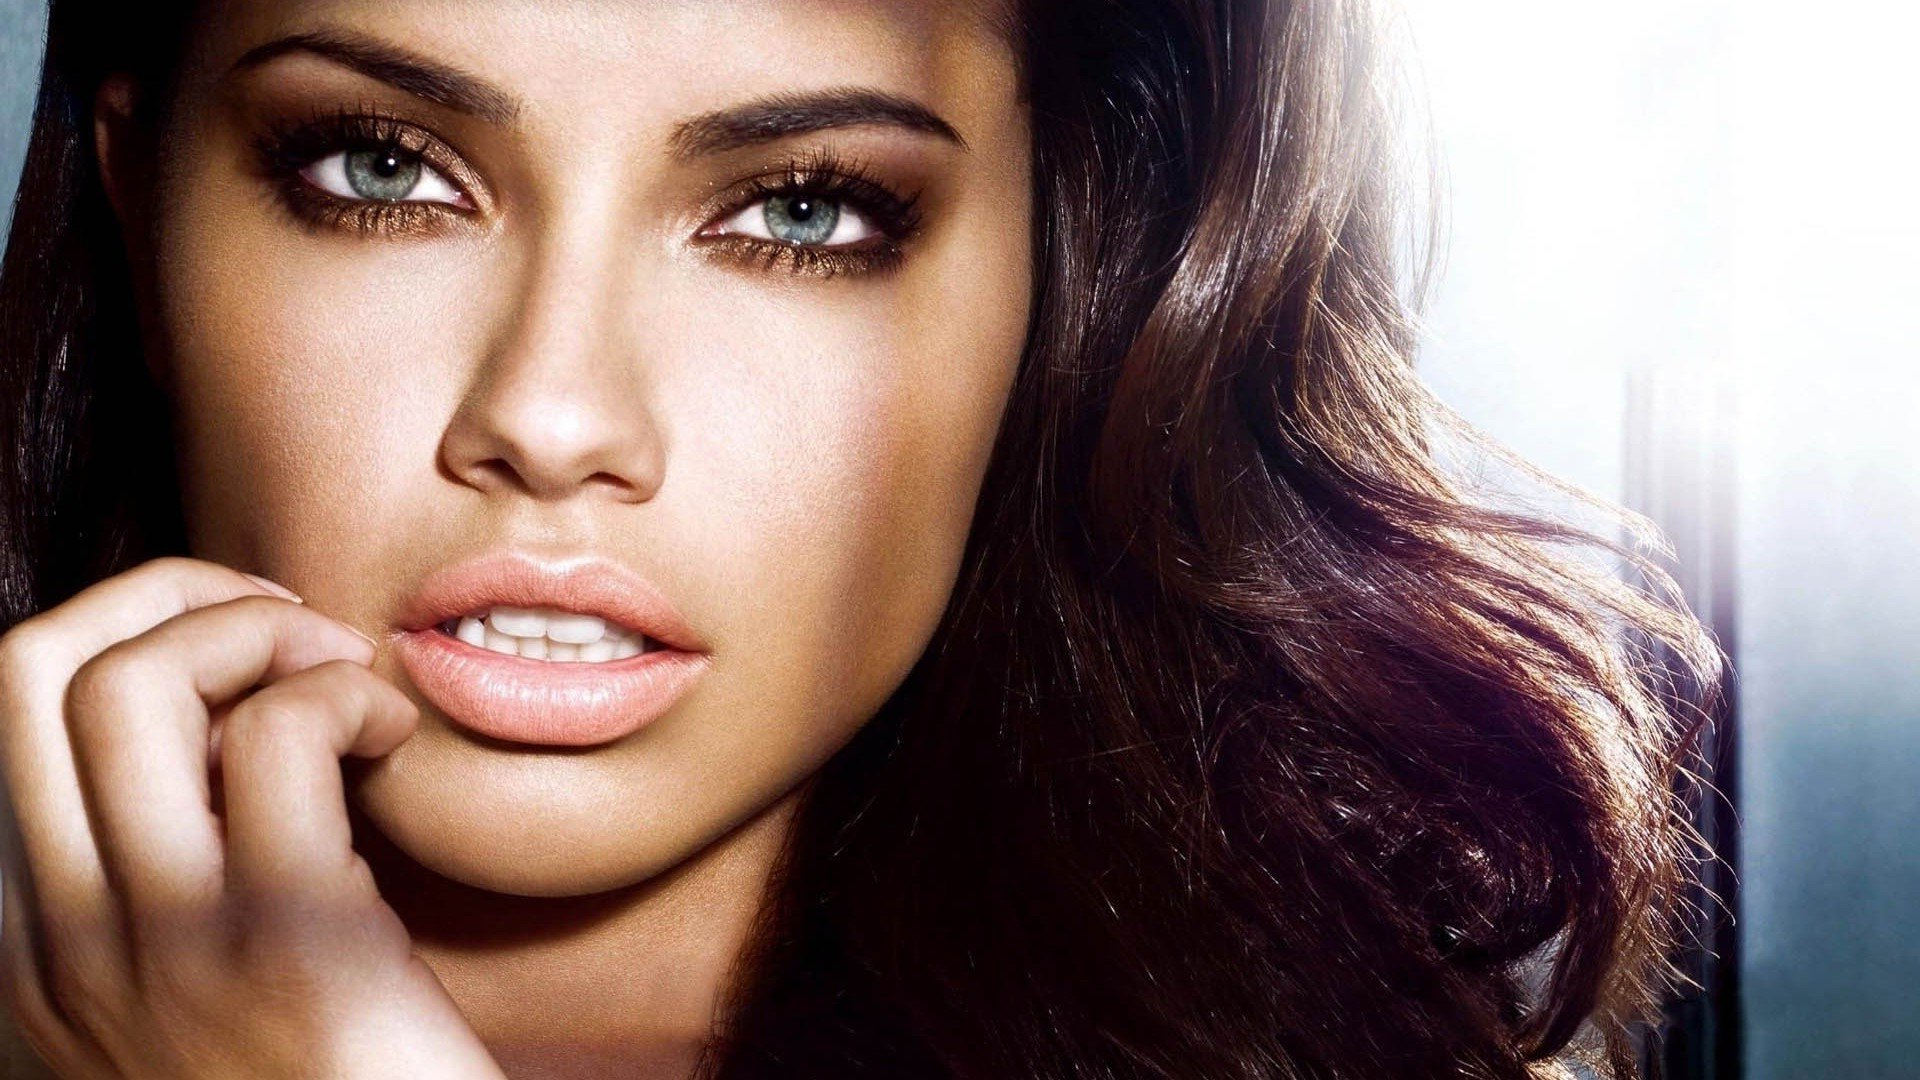 Adriana lima face desktop wallpaper 51769 1920x1080 px adriana lima face desktop wallpaper 51769 voltagebd